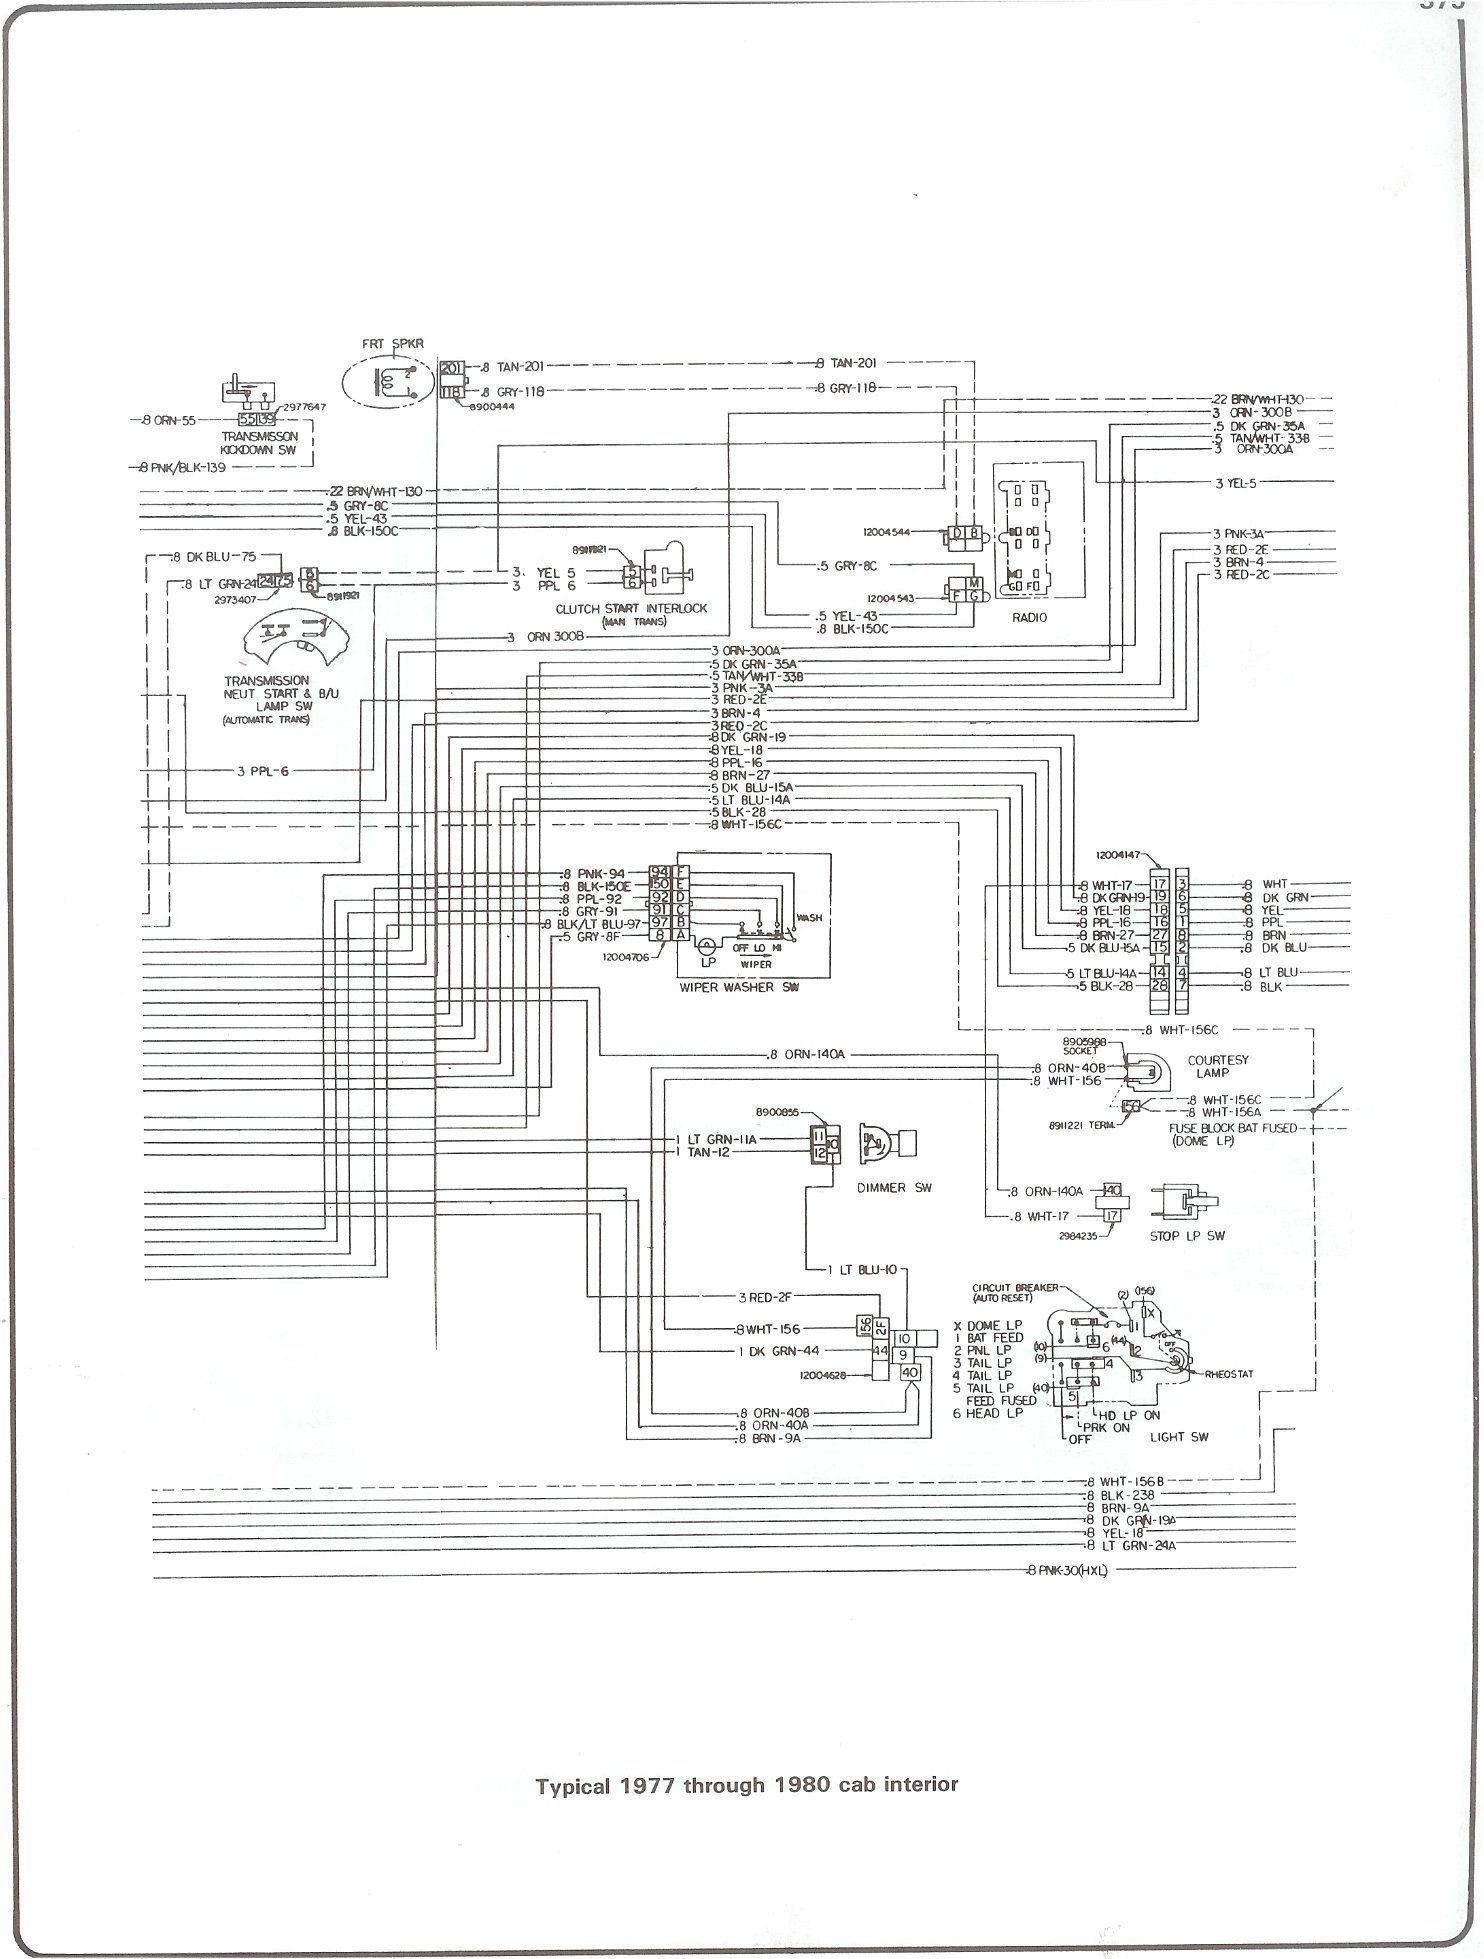 86 Chevy Truck Wiring Harness Diagram 1983 Ford F 150 Ignition Complete 73 87 Diagrams86 21